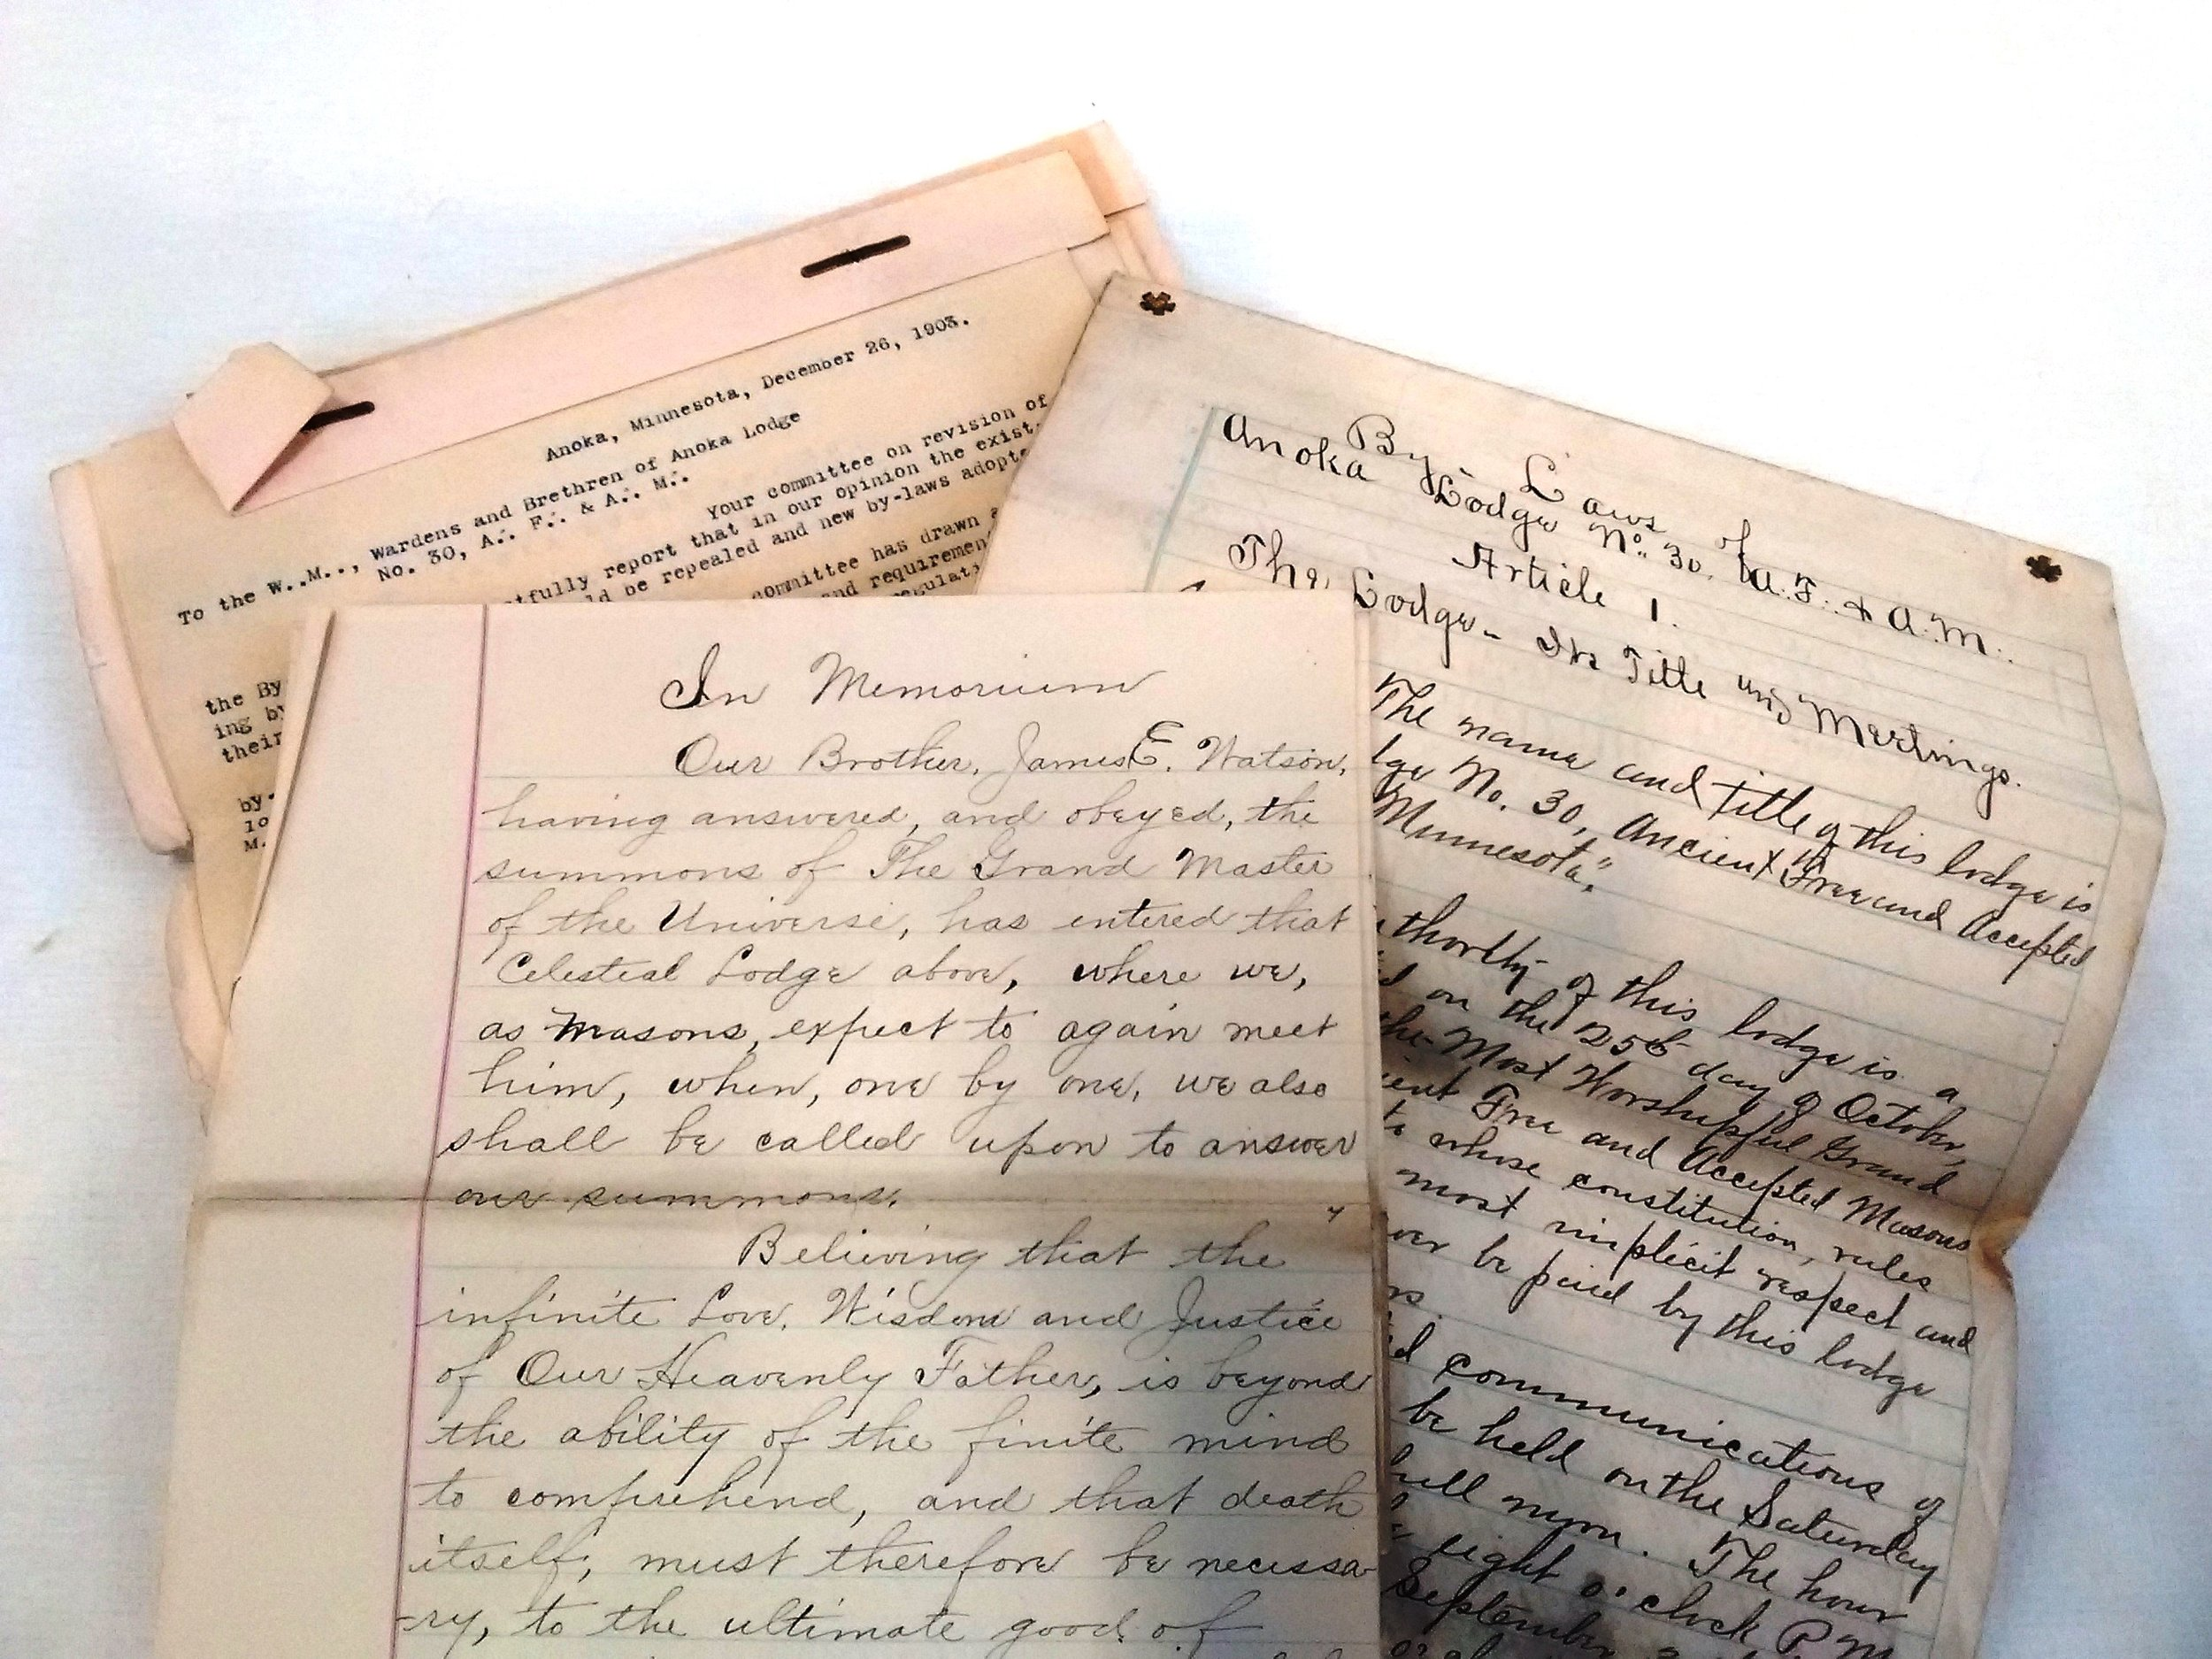 Documents from the Anoka Masonic Lodge collection.